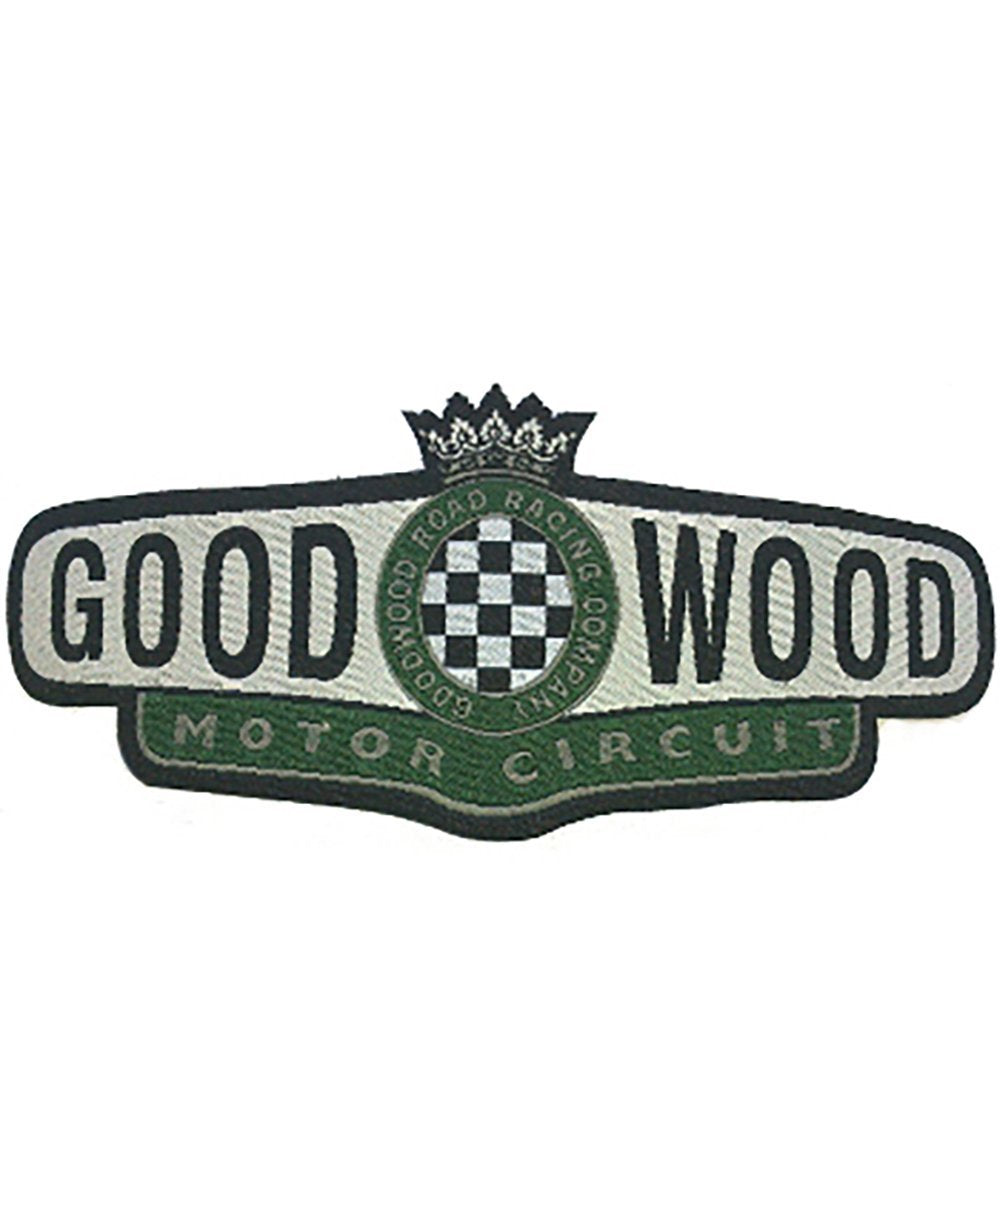 Goodwood Motor Circuit Iron On Badge